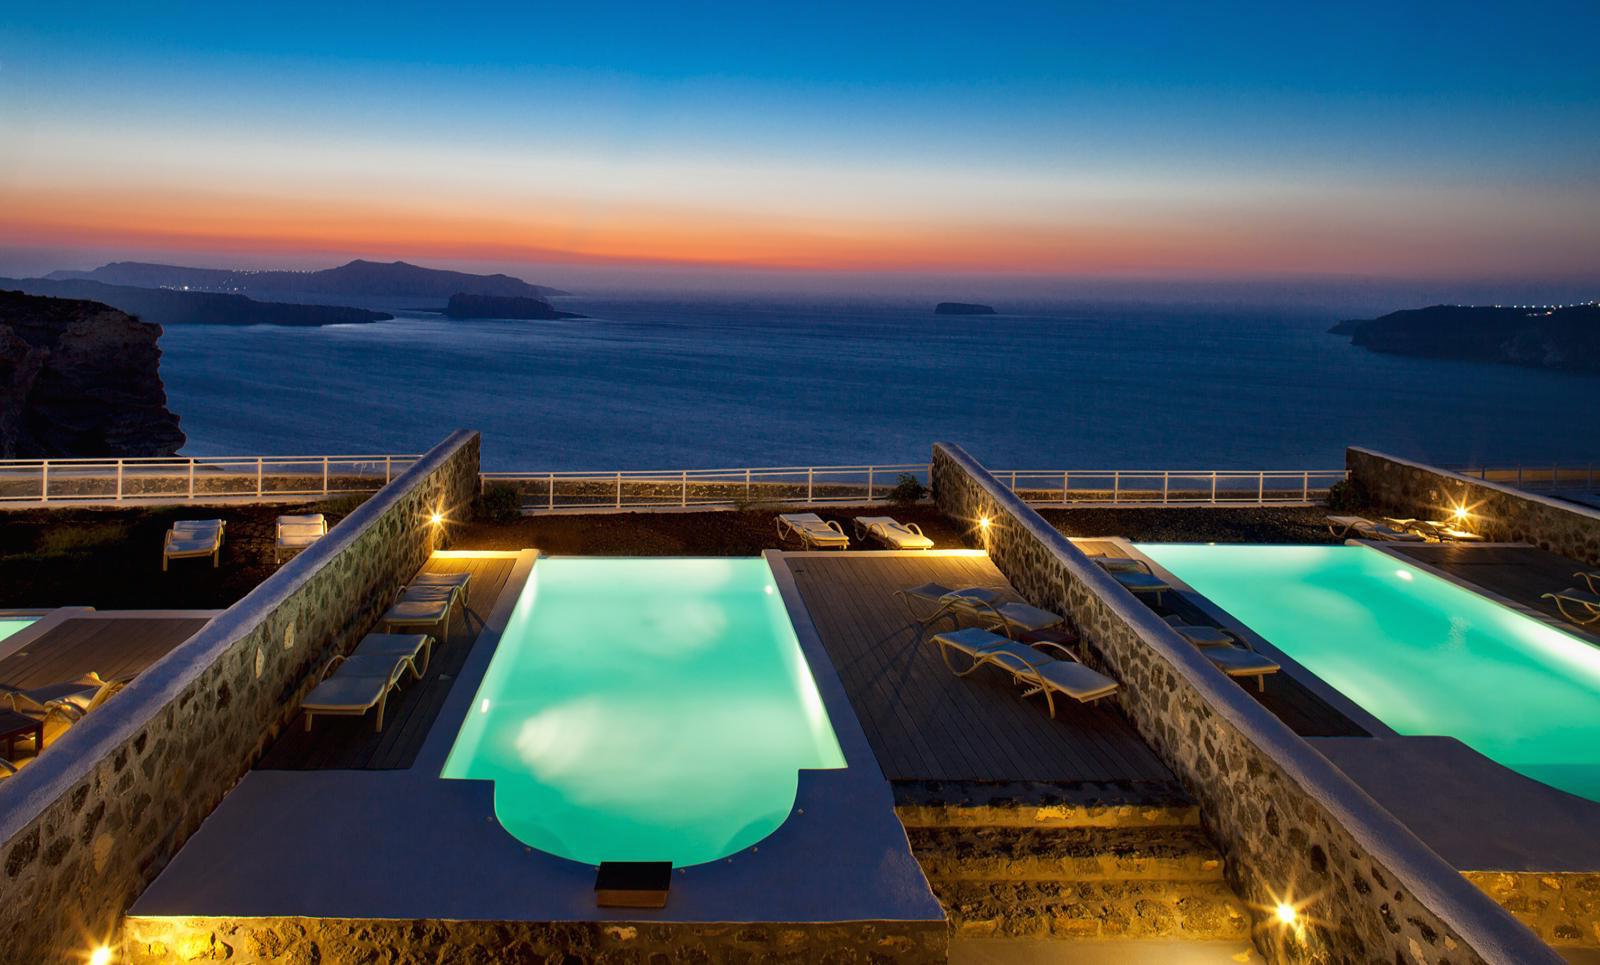 Luxury Summer Villa in Santorini